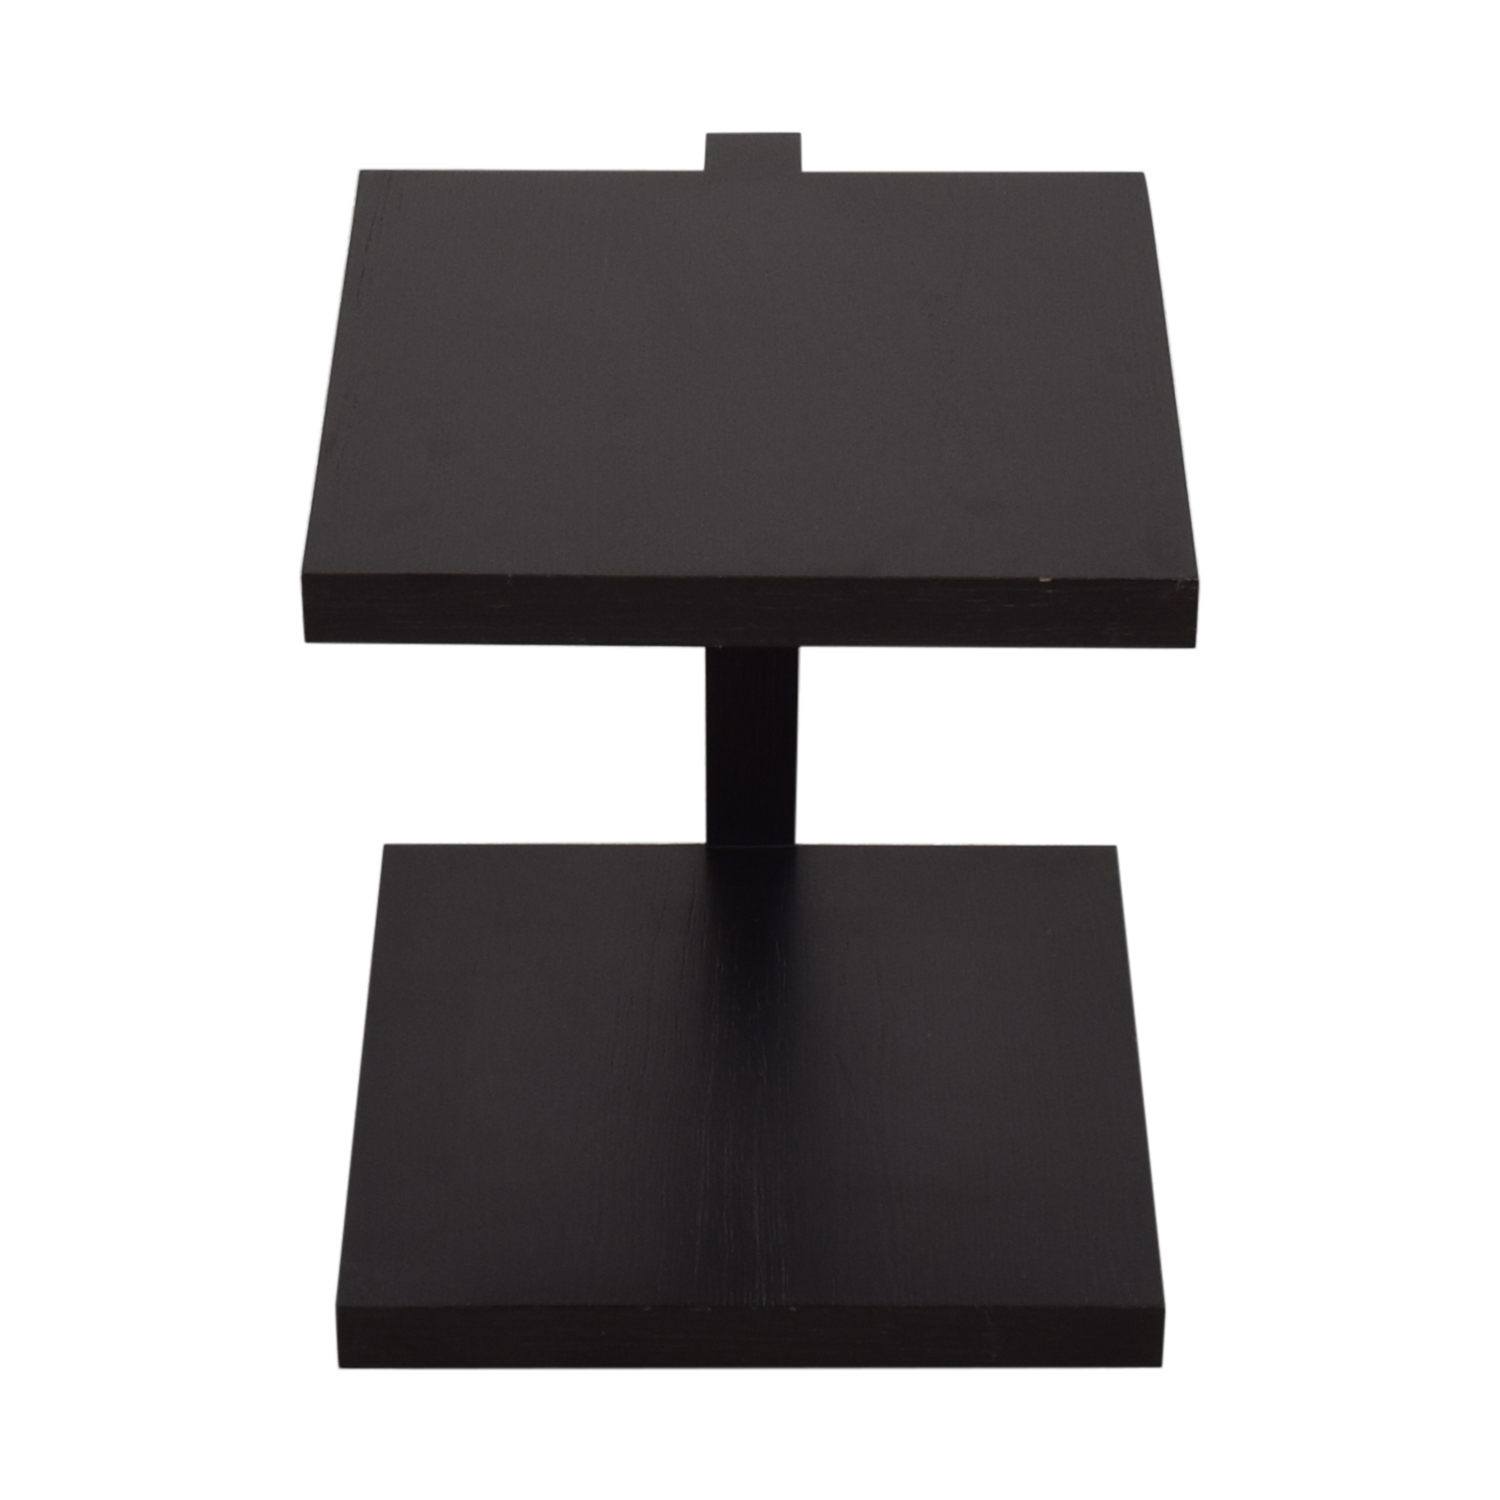 Moura Starr Moura Starr Floating Nightstand used